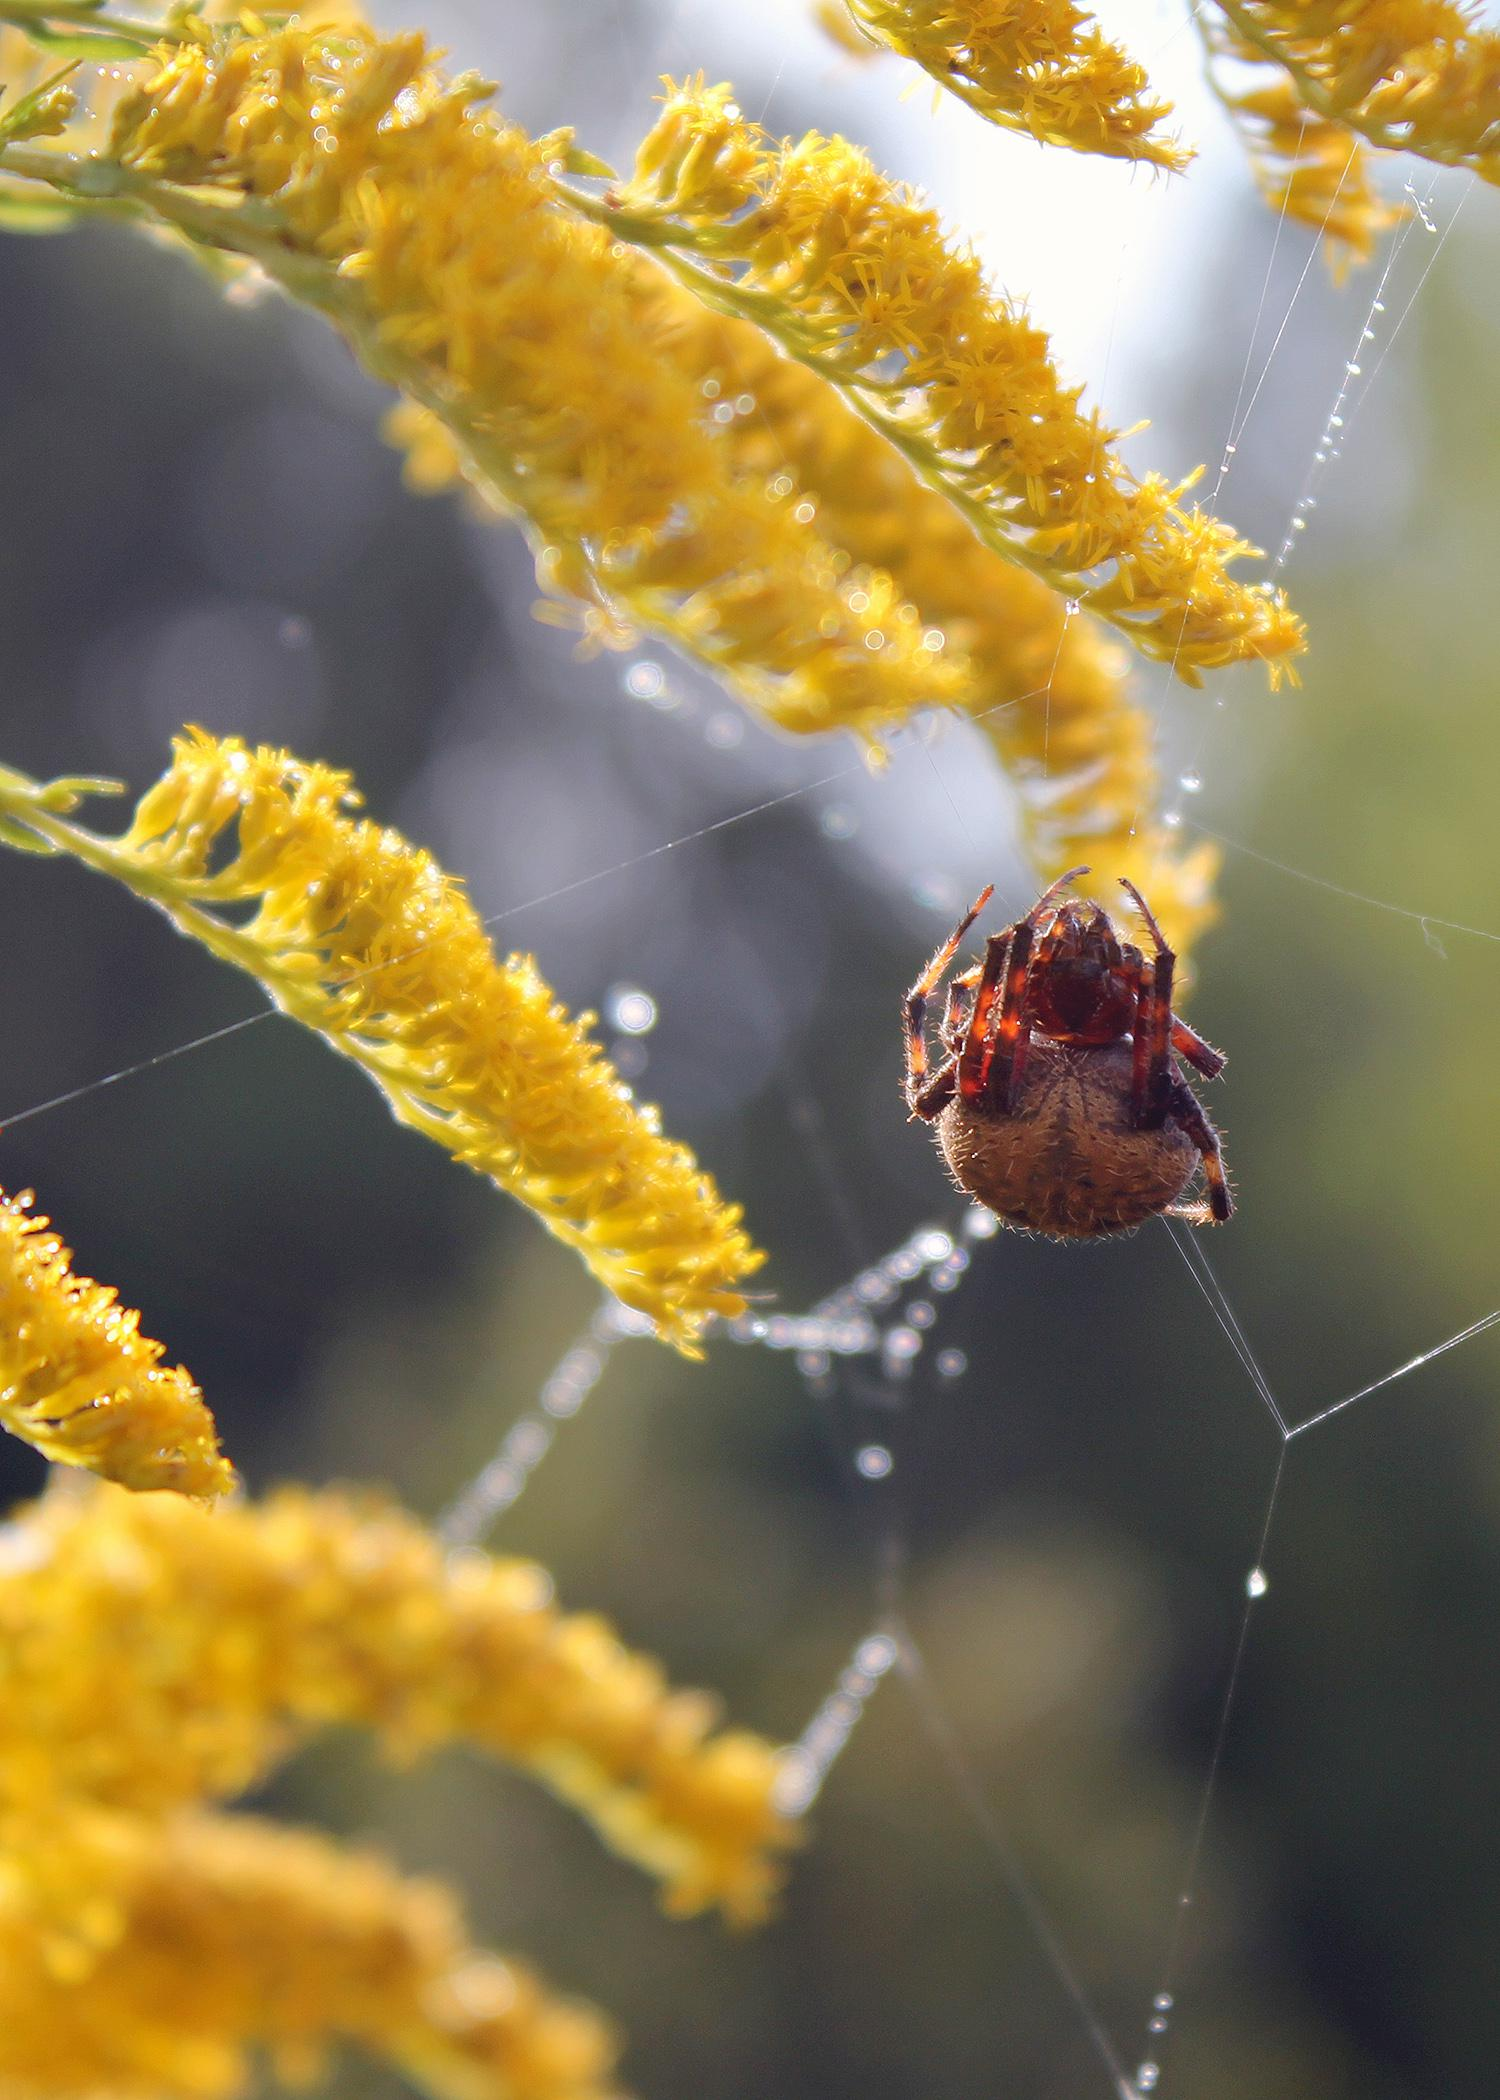 Whether kids calculate the angles on a spider web or draw in a nature notebook, opportunities to study nature and enjoy the great outdoors this summer abound. (Photo courtesy of Marina Denny)